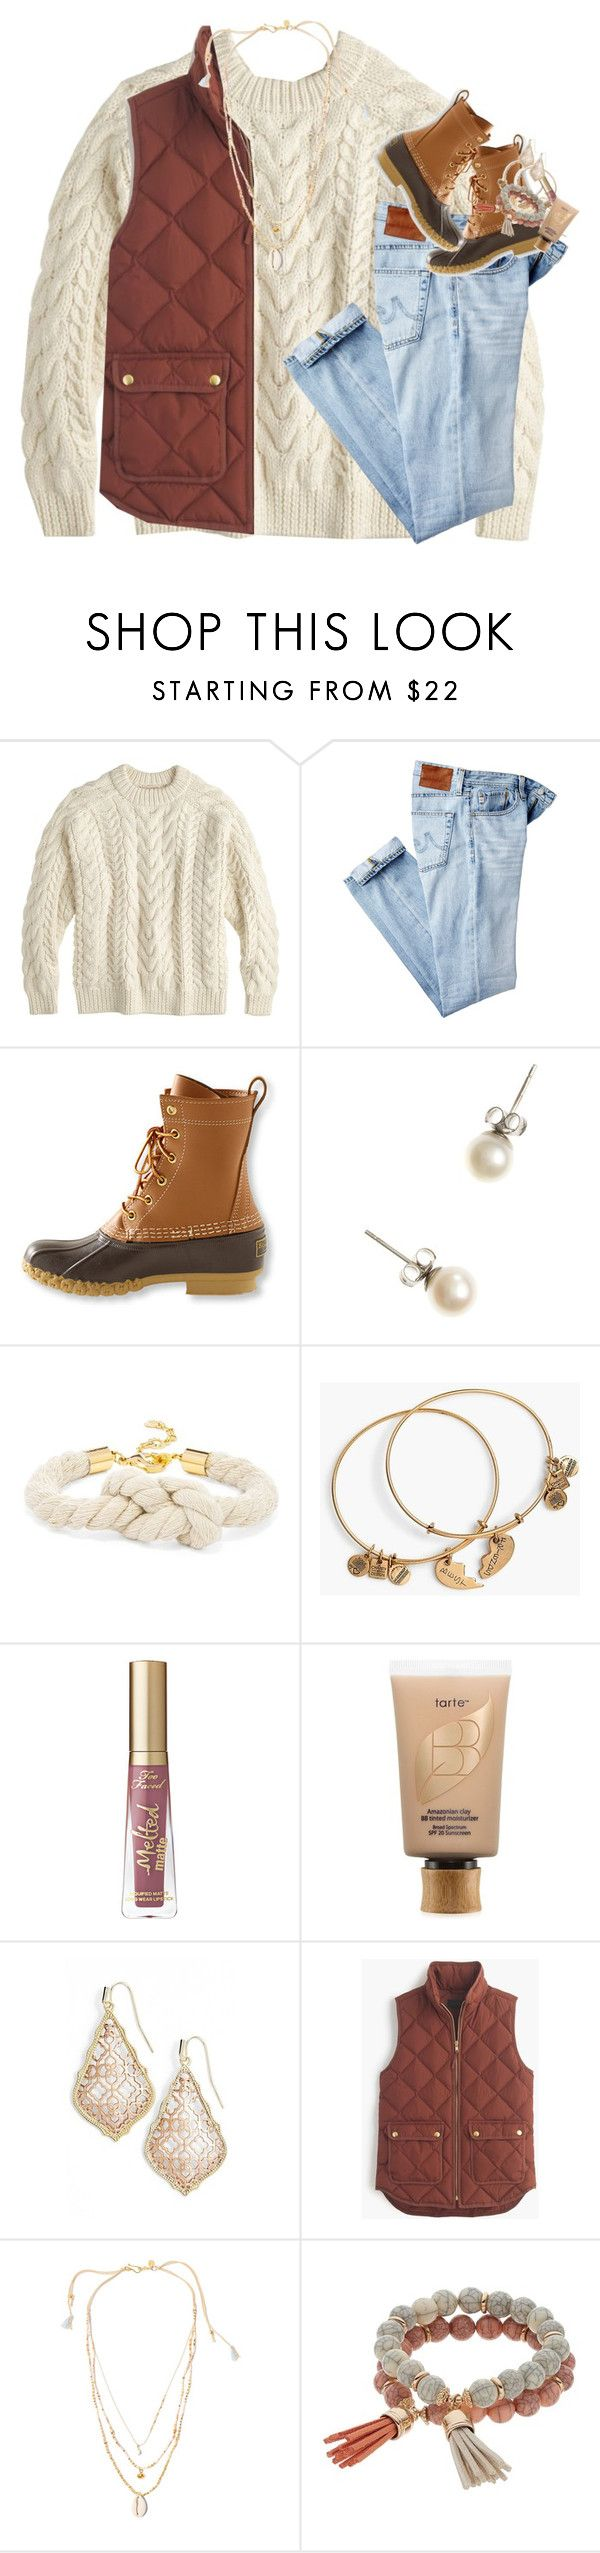 """""""come on, come on, turn the radio on"""" by classynsouthern ❤ liked on Polyvore featuring Demylee, AG Adriano Goldschmied, L.L.Bean, J.Crew, BaubleBar, Alex and Ani, tarte, Kendra Scott, Chan Luu and Coco Lane"""